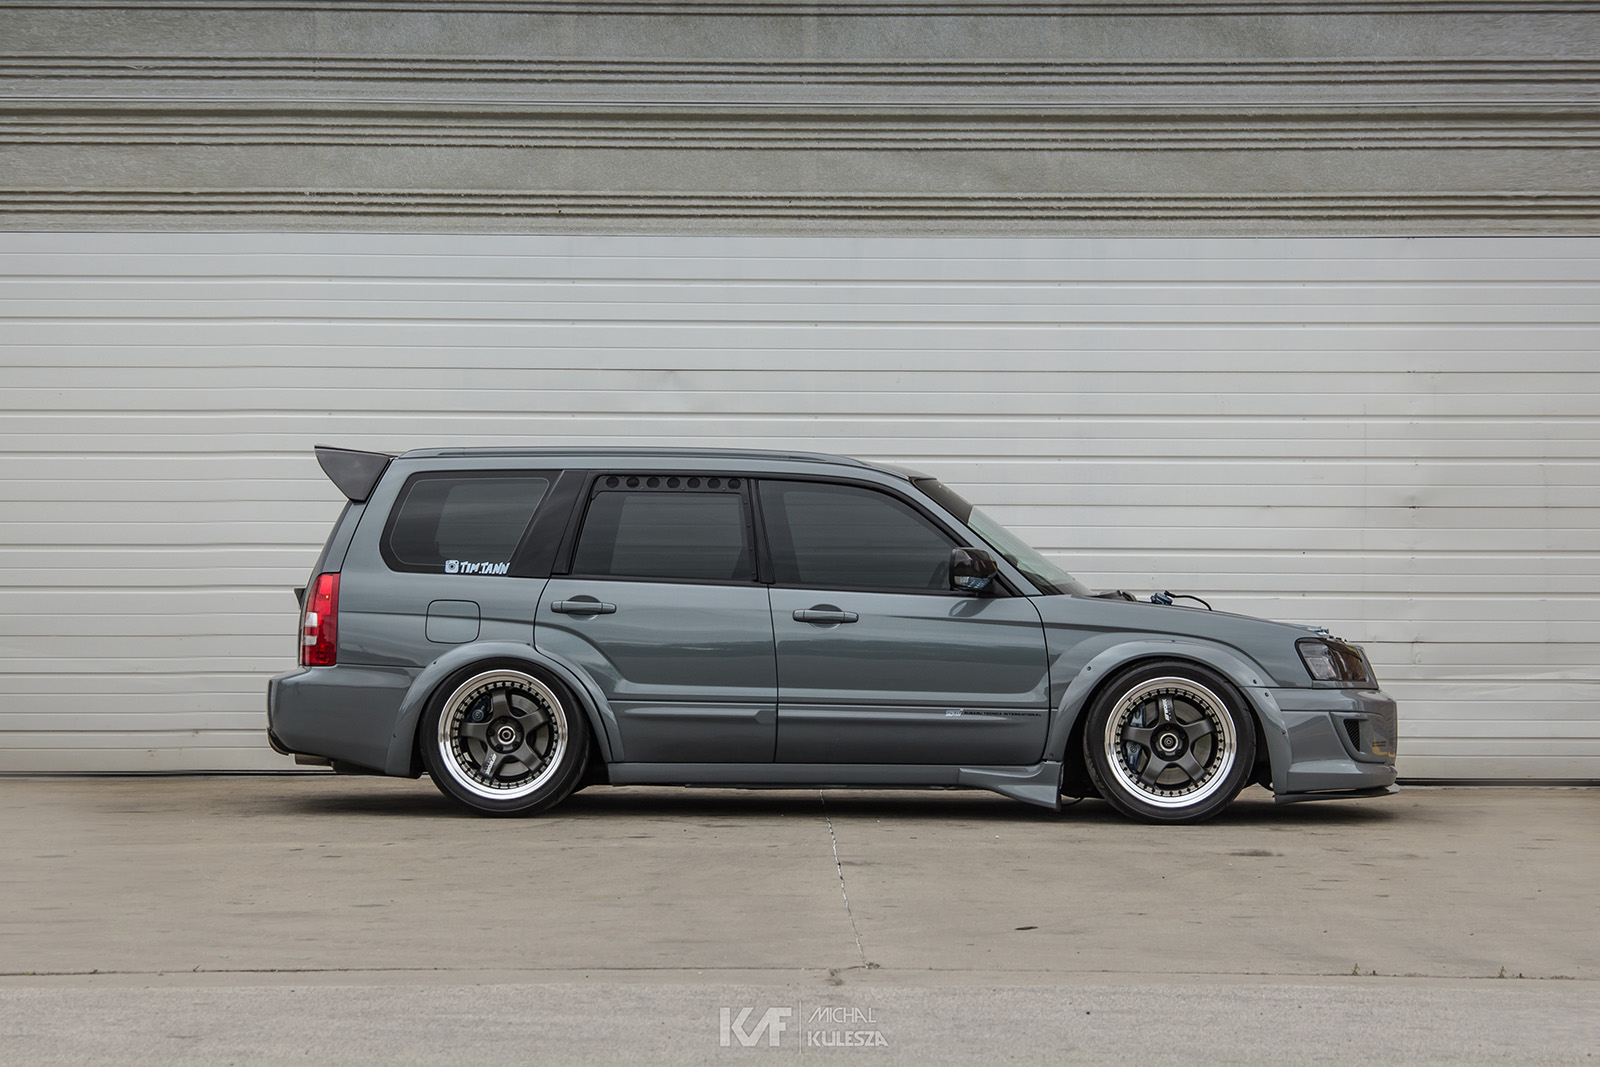 path less travelled tim tannhauser s 2004 subaru forester xt pasmag is the tuner s source for modified car culture since 1999 path less travelled tim tannhauser s 2004 subaru forester xt pasmag is the tuner s source for modified car culture since 1999